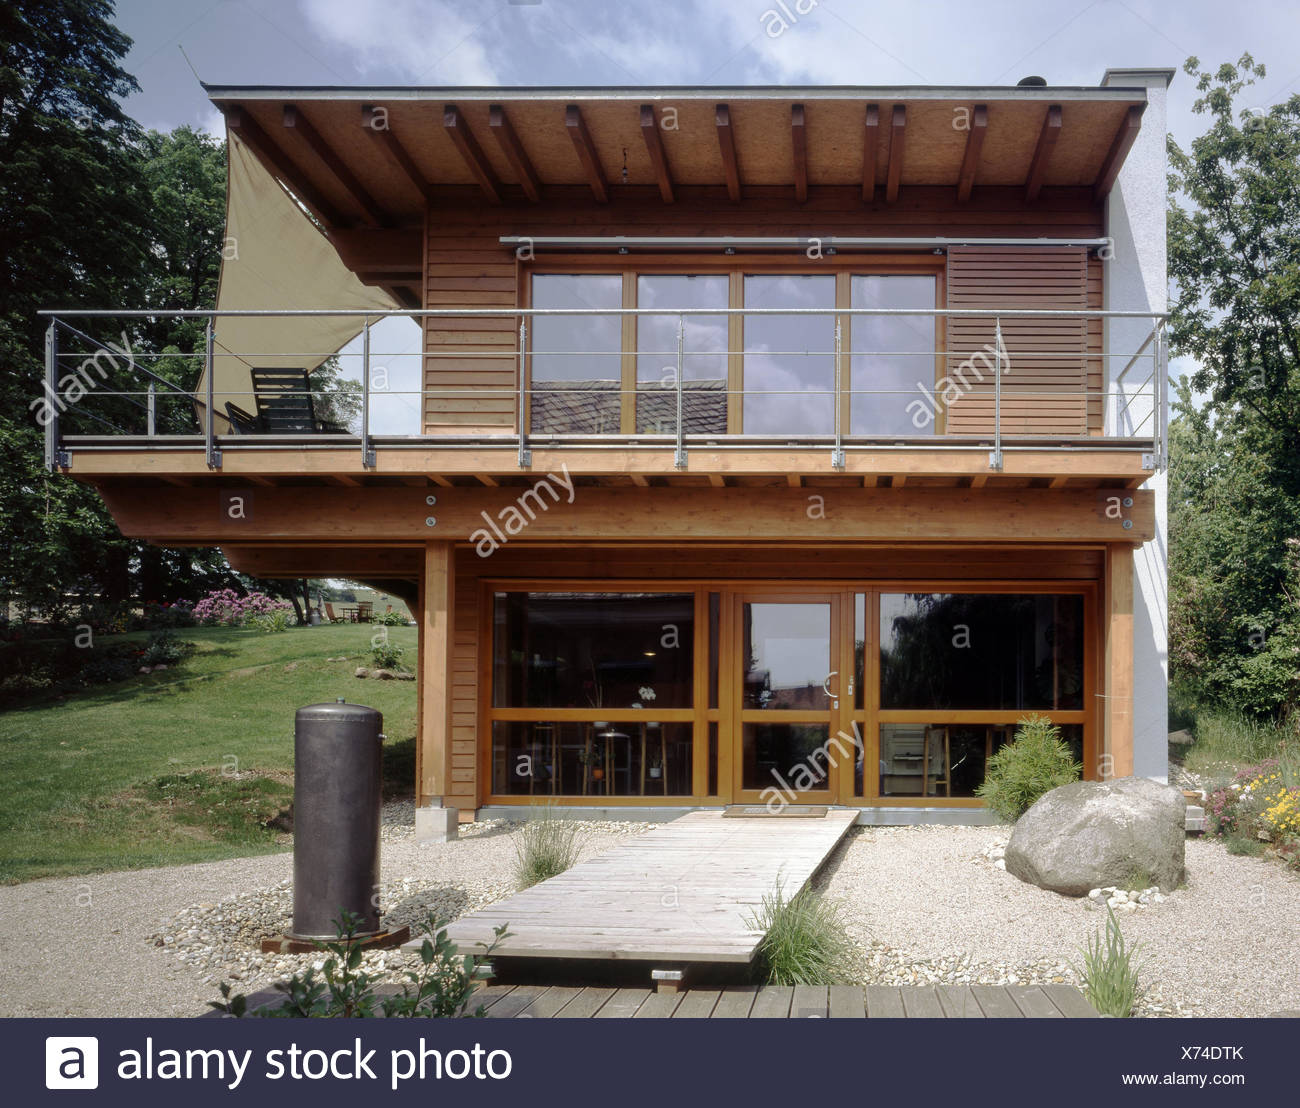 Flat Roof House Stock Photos Flat Roof House Stock Images Alamy